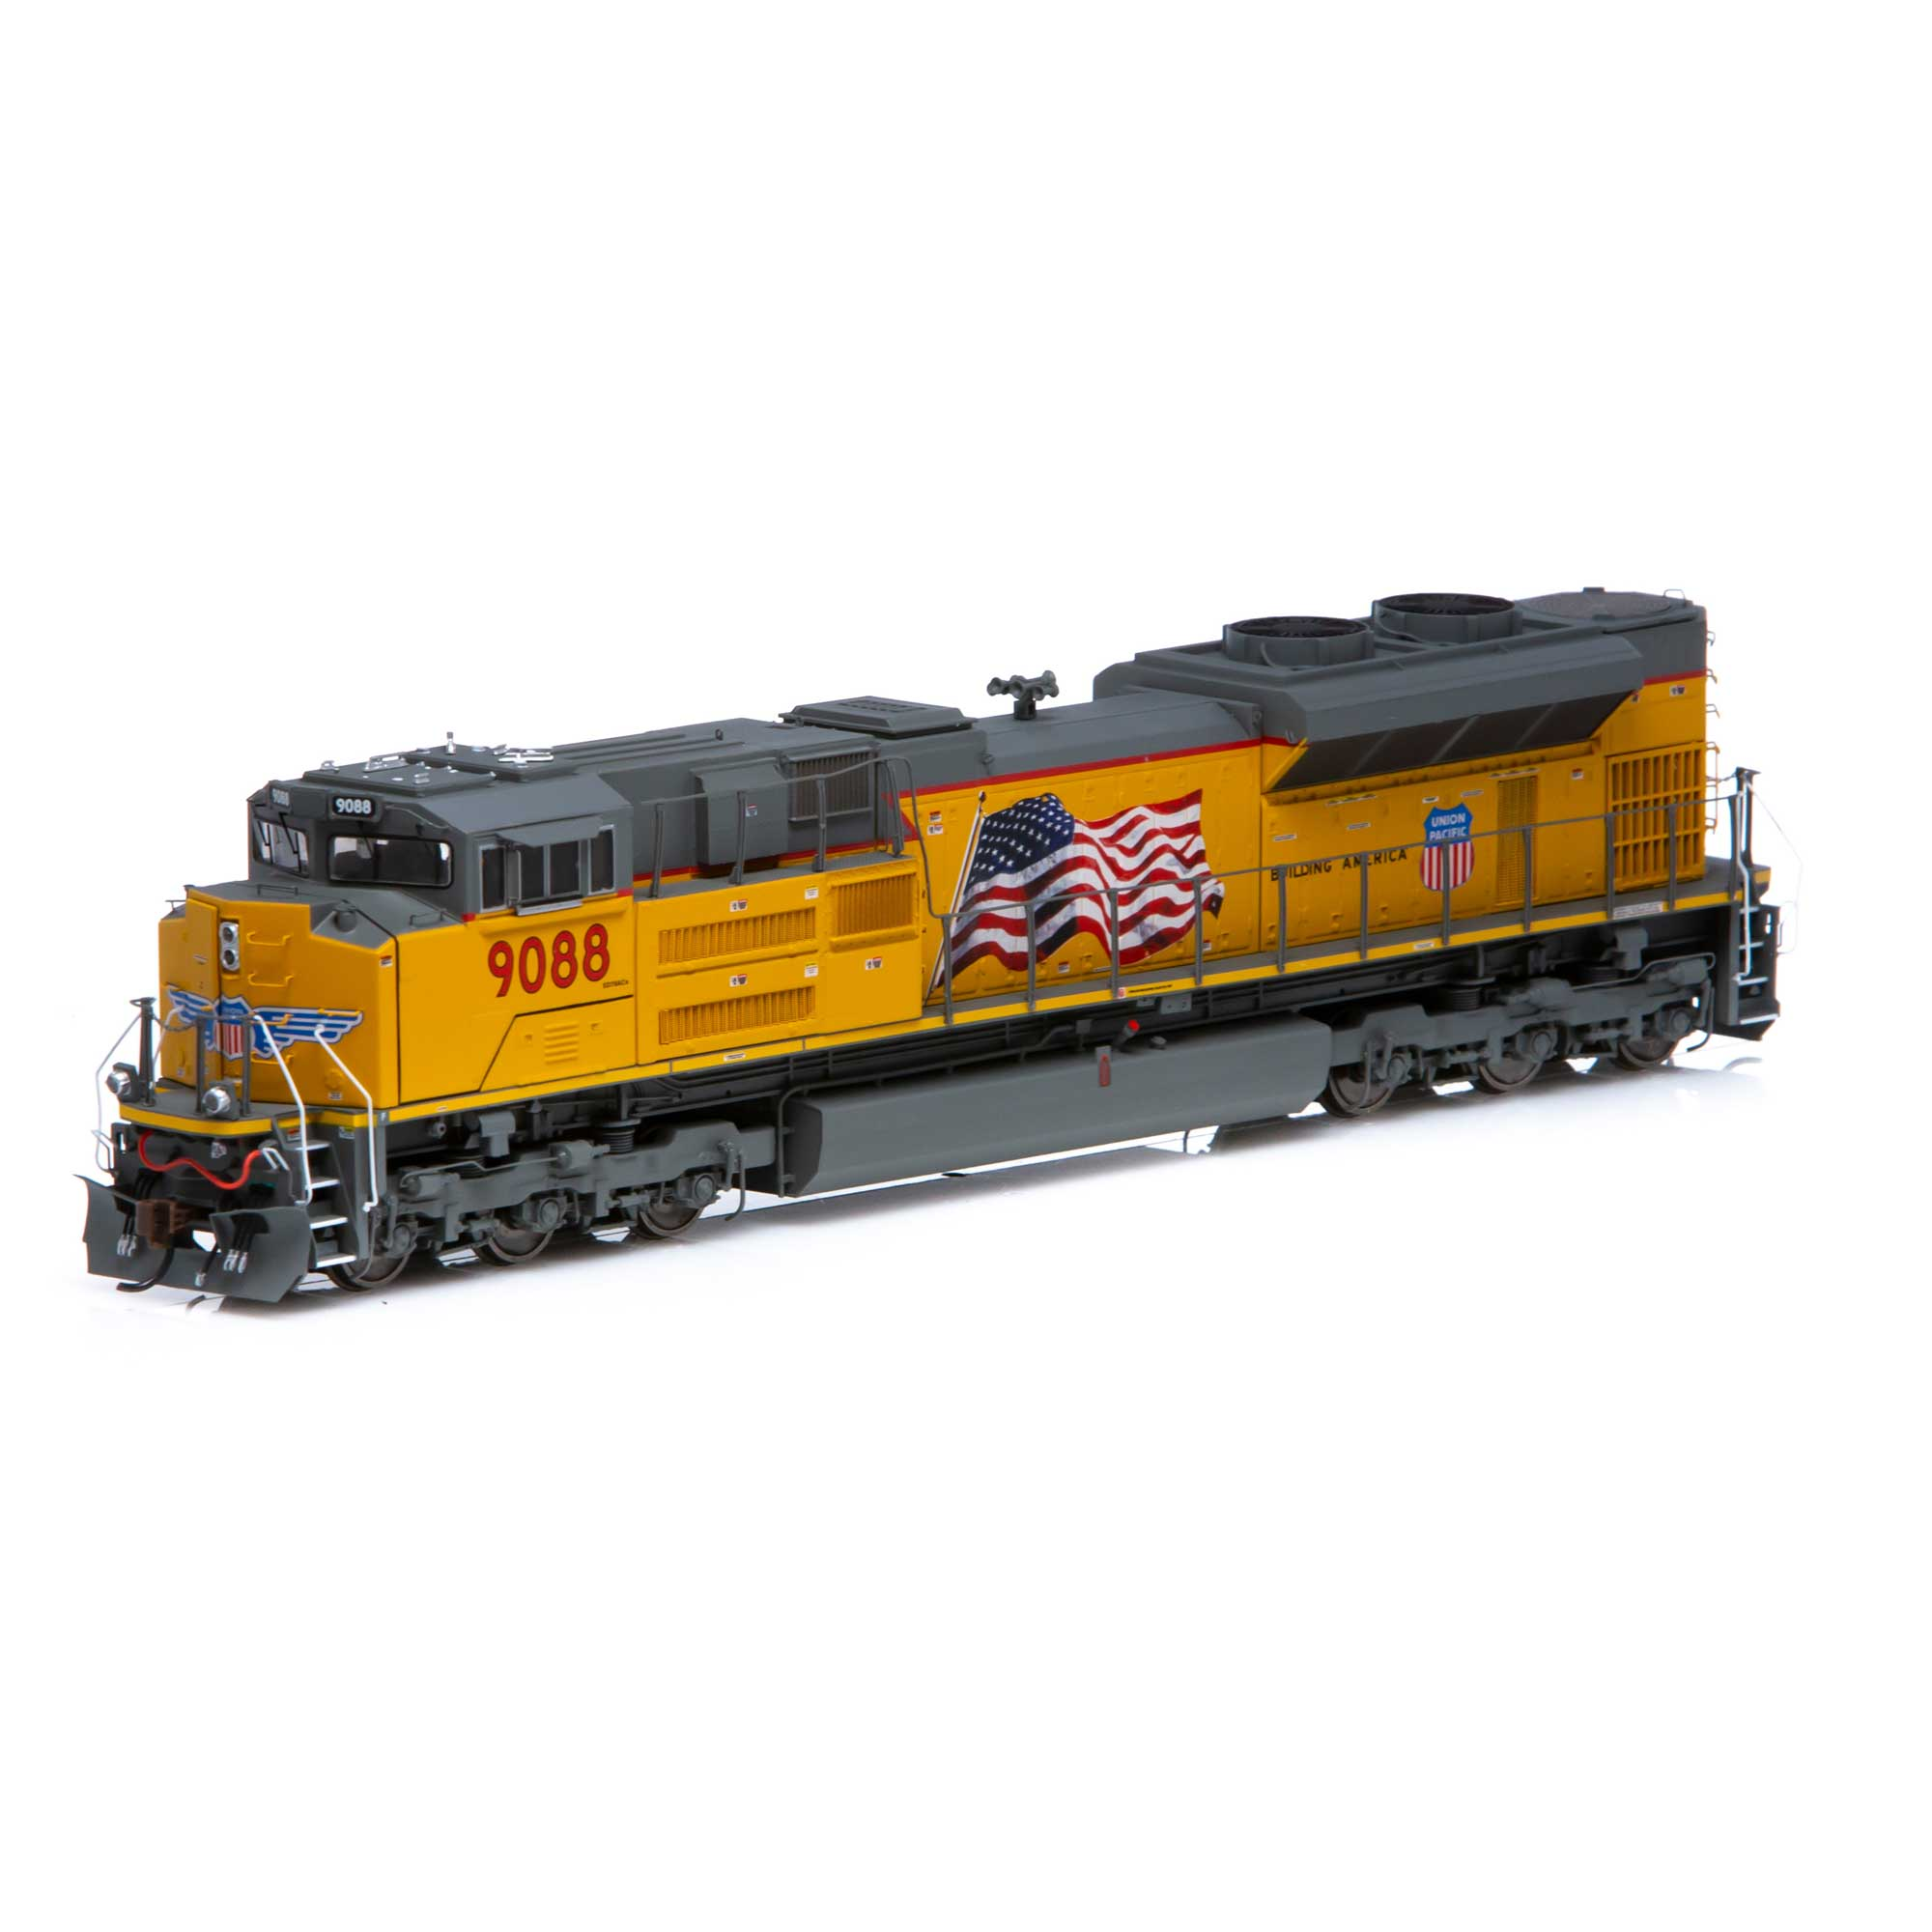 Locomotiva SD70Ace Som e DCC